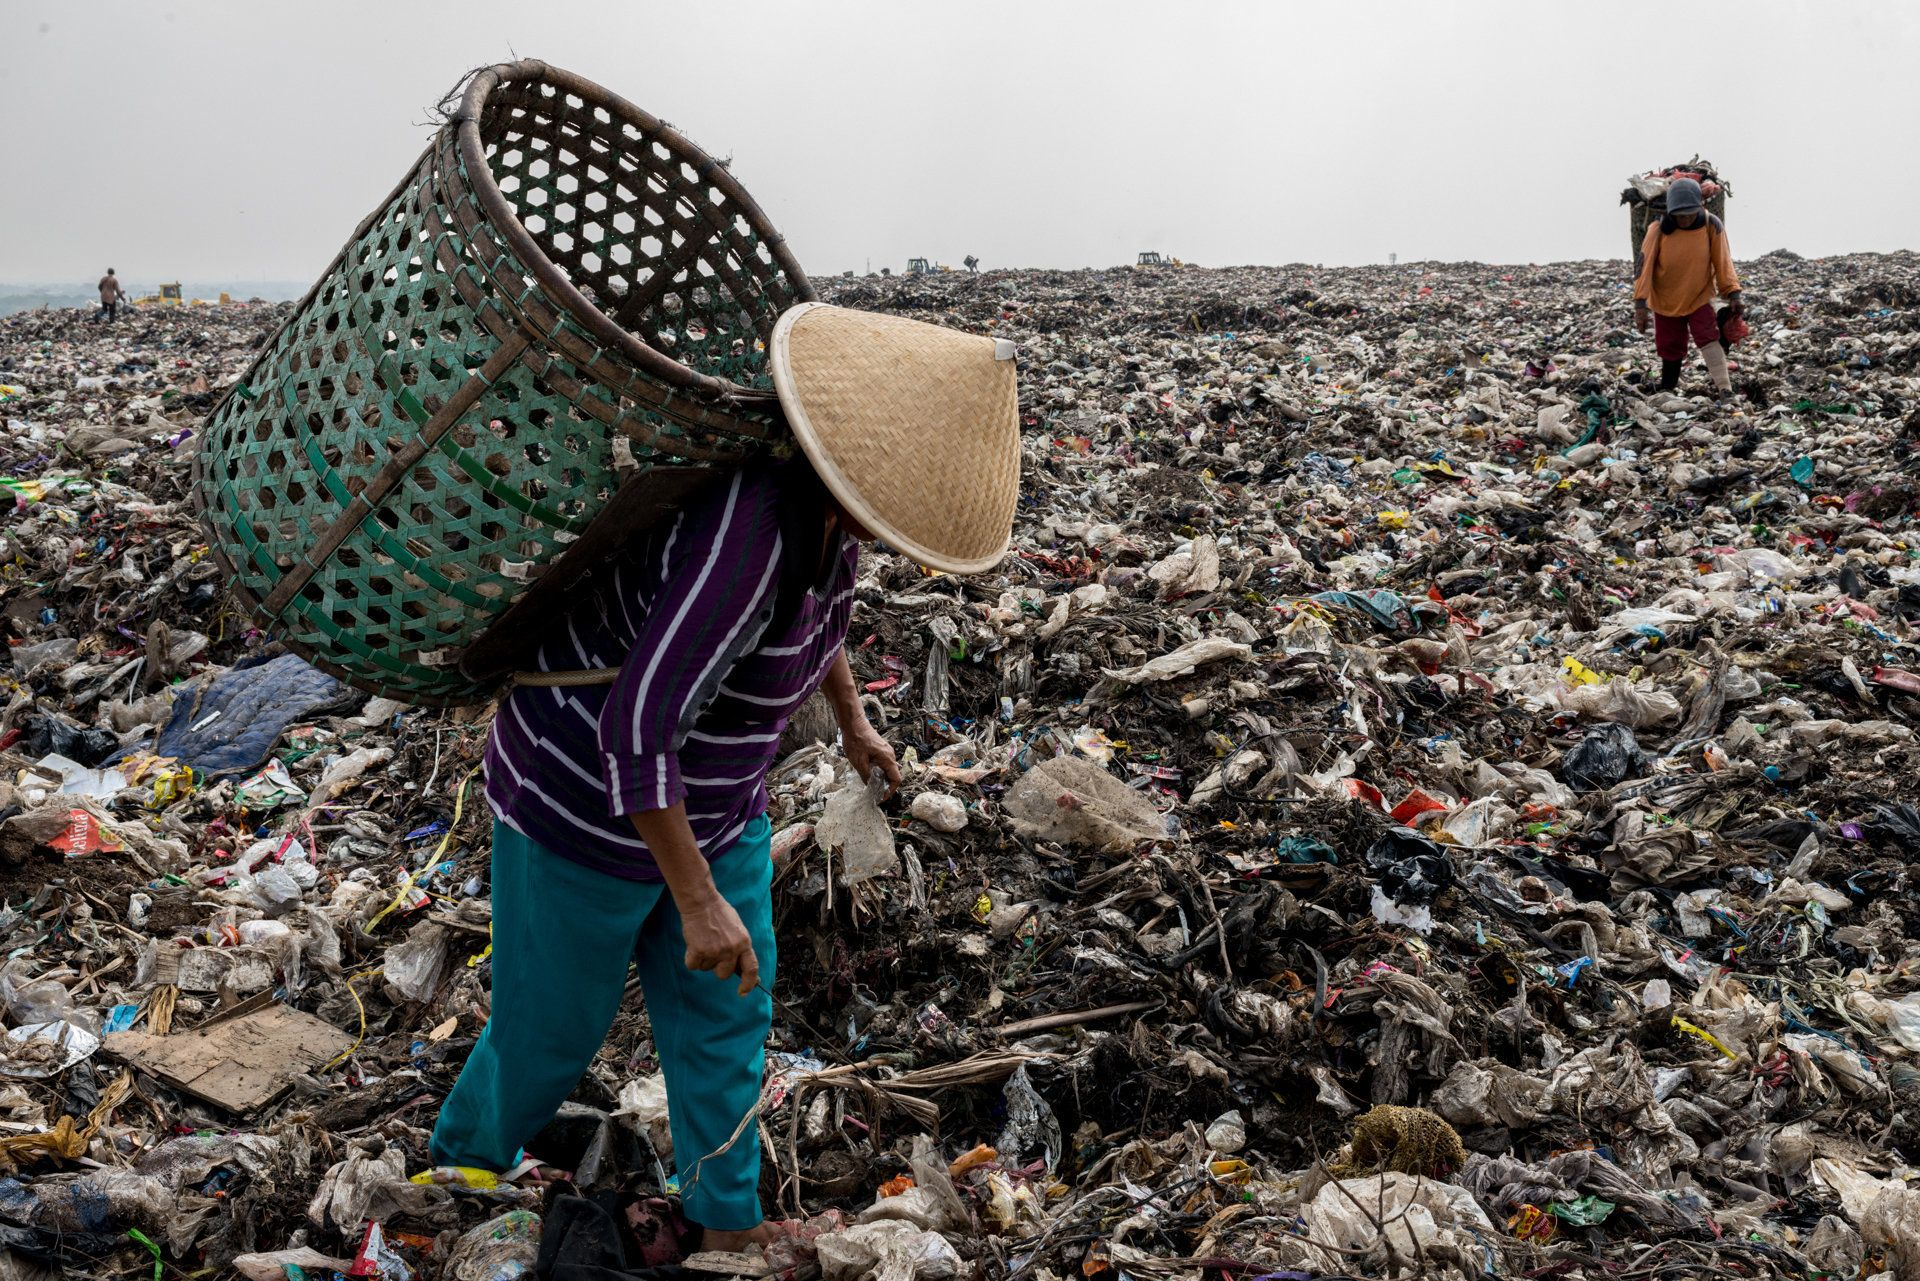 "Mak Muji, 55, picks up plastics and other materials on the top of the mountain of garbage in ""Bantar Gebang"", the landfill for solid waste of Jakarta, a city of more than 15 million residents. Every day, at dawn, she crosses the road in front of her village and goes to the dumping site for collecting trash, mostly plastics but also glass, cans, shoes, iron. She puts everything in her back pannier to sort them later and sell to recycling factories. Bekasi, Indonesia, 19th September 2017."